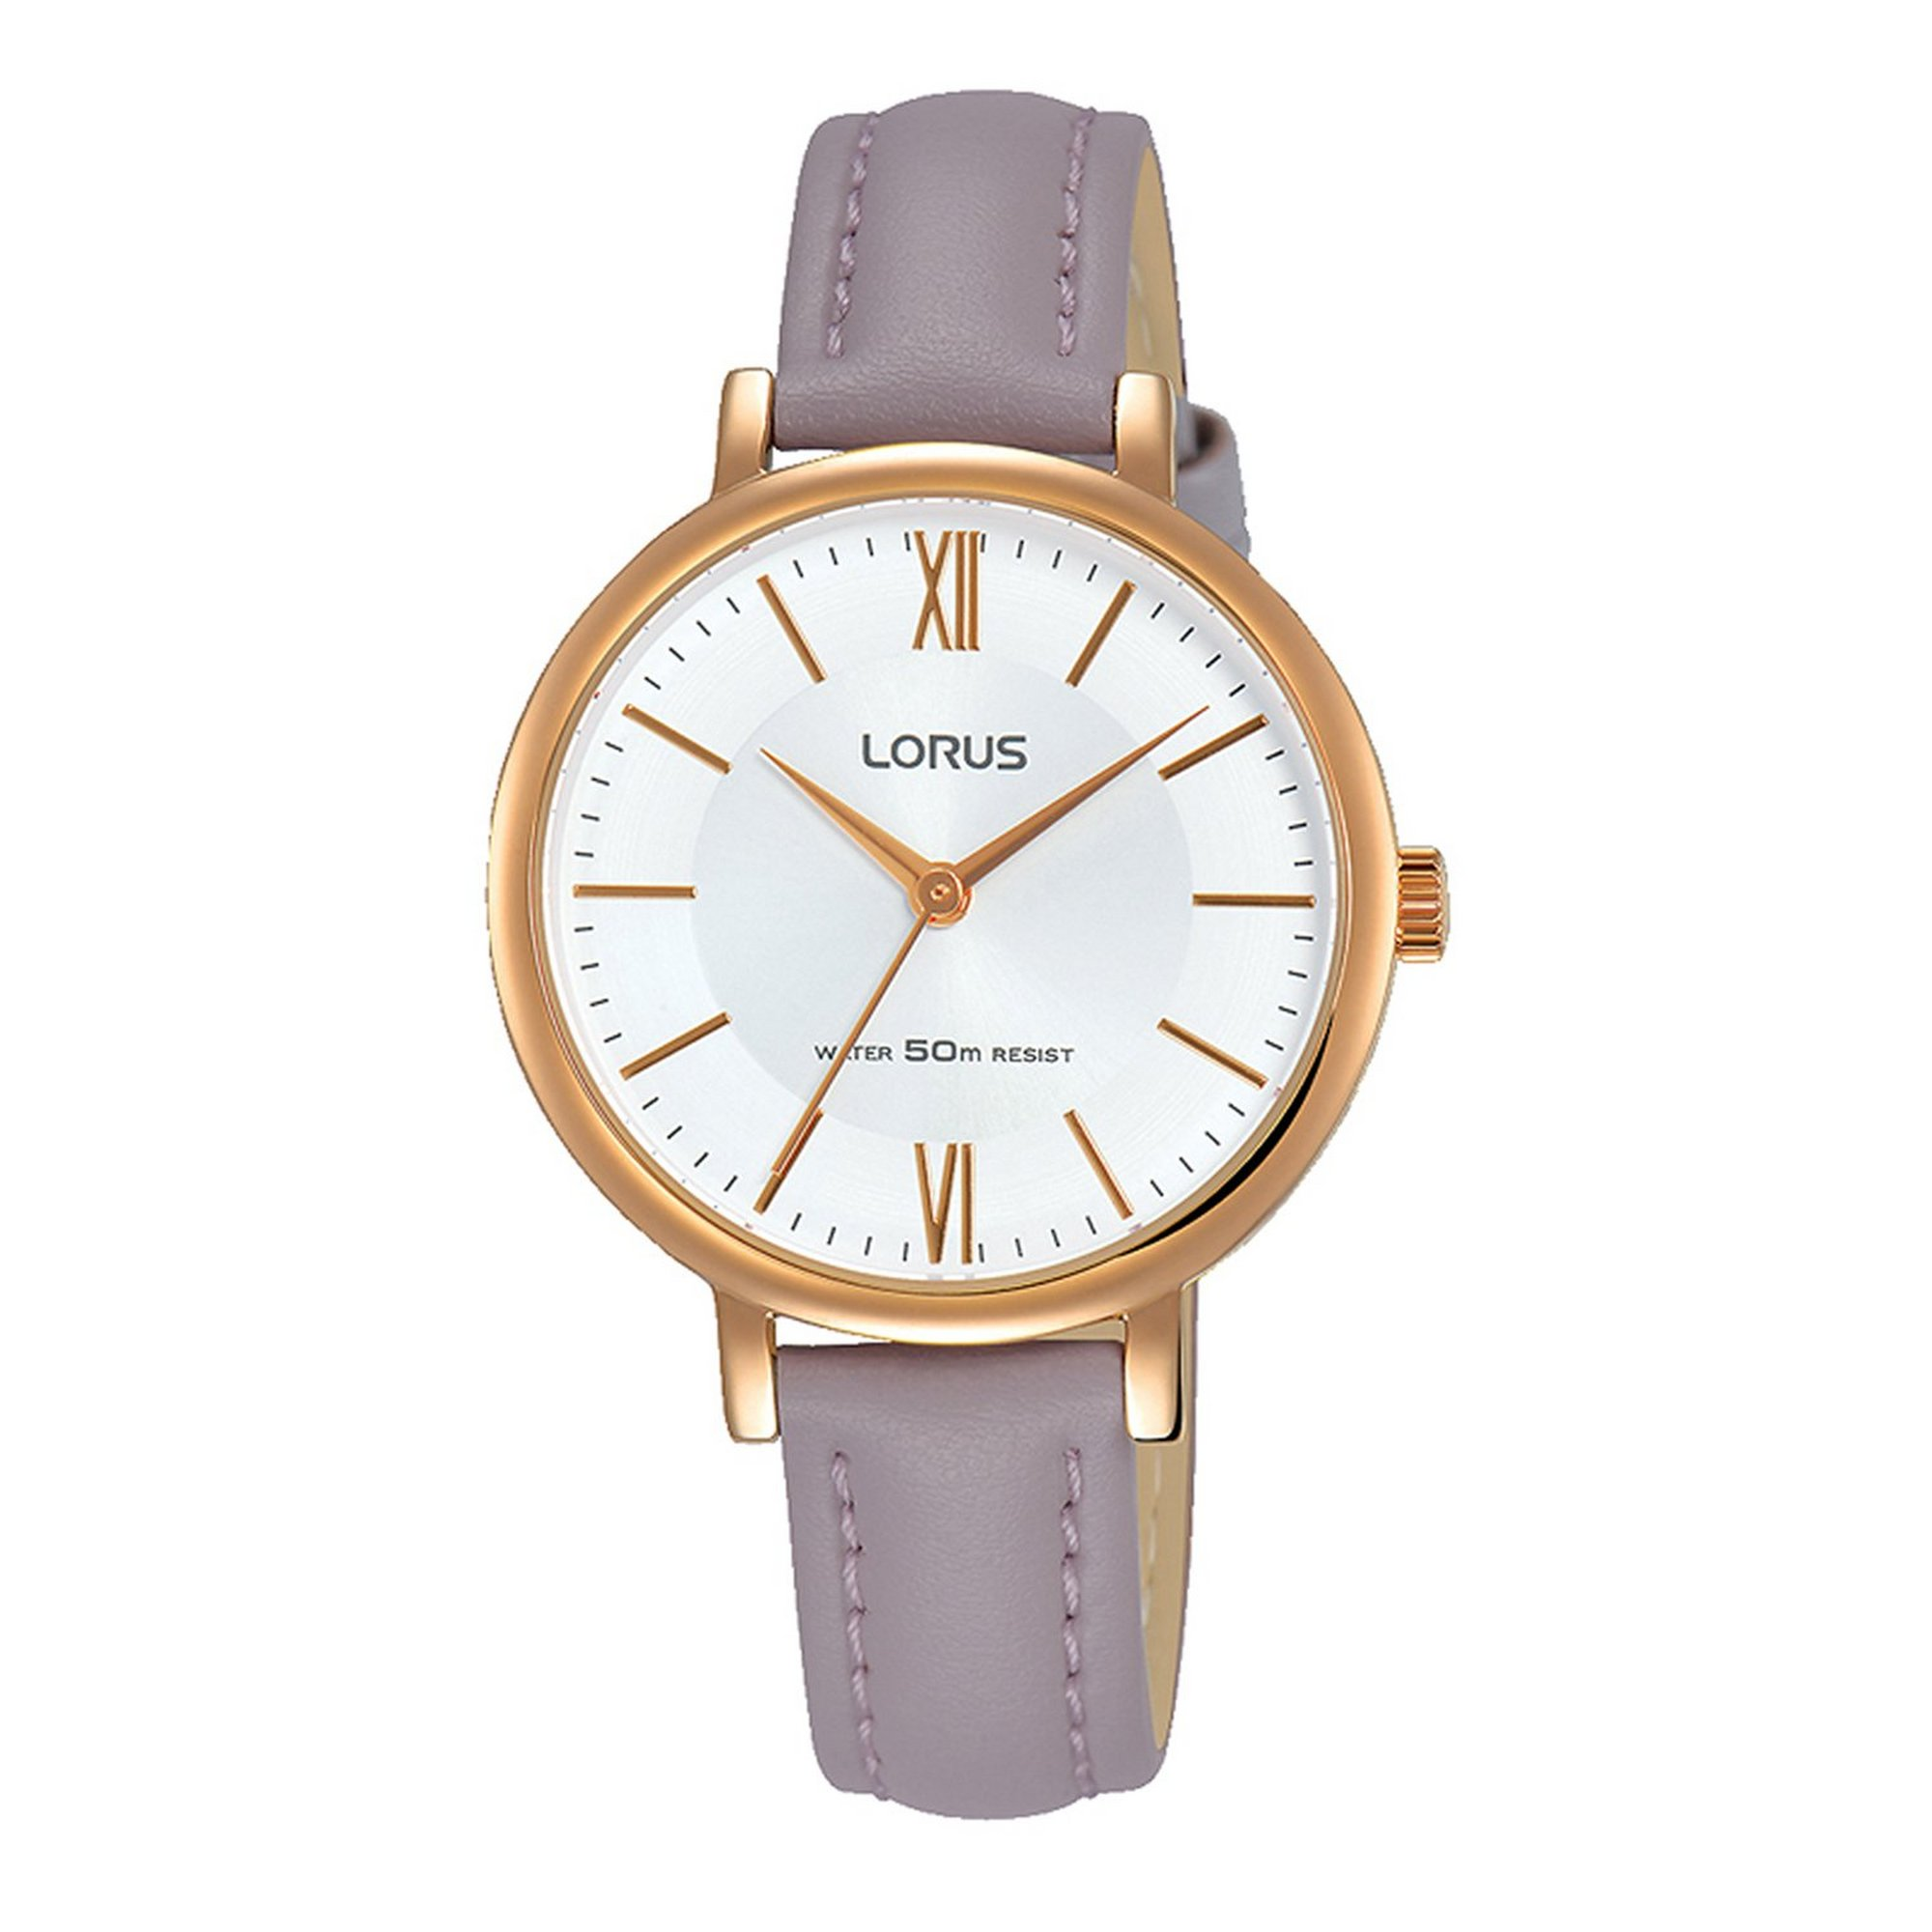 Image of Lorus Elegant Mauve Leather Strap Watch with Rose Gold Plated Case